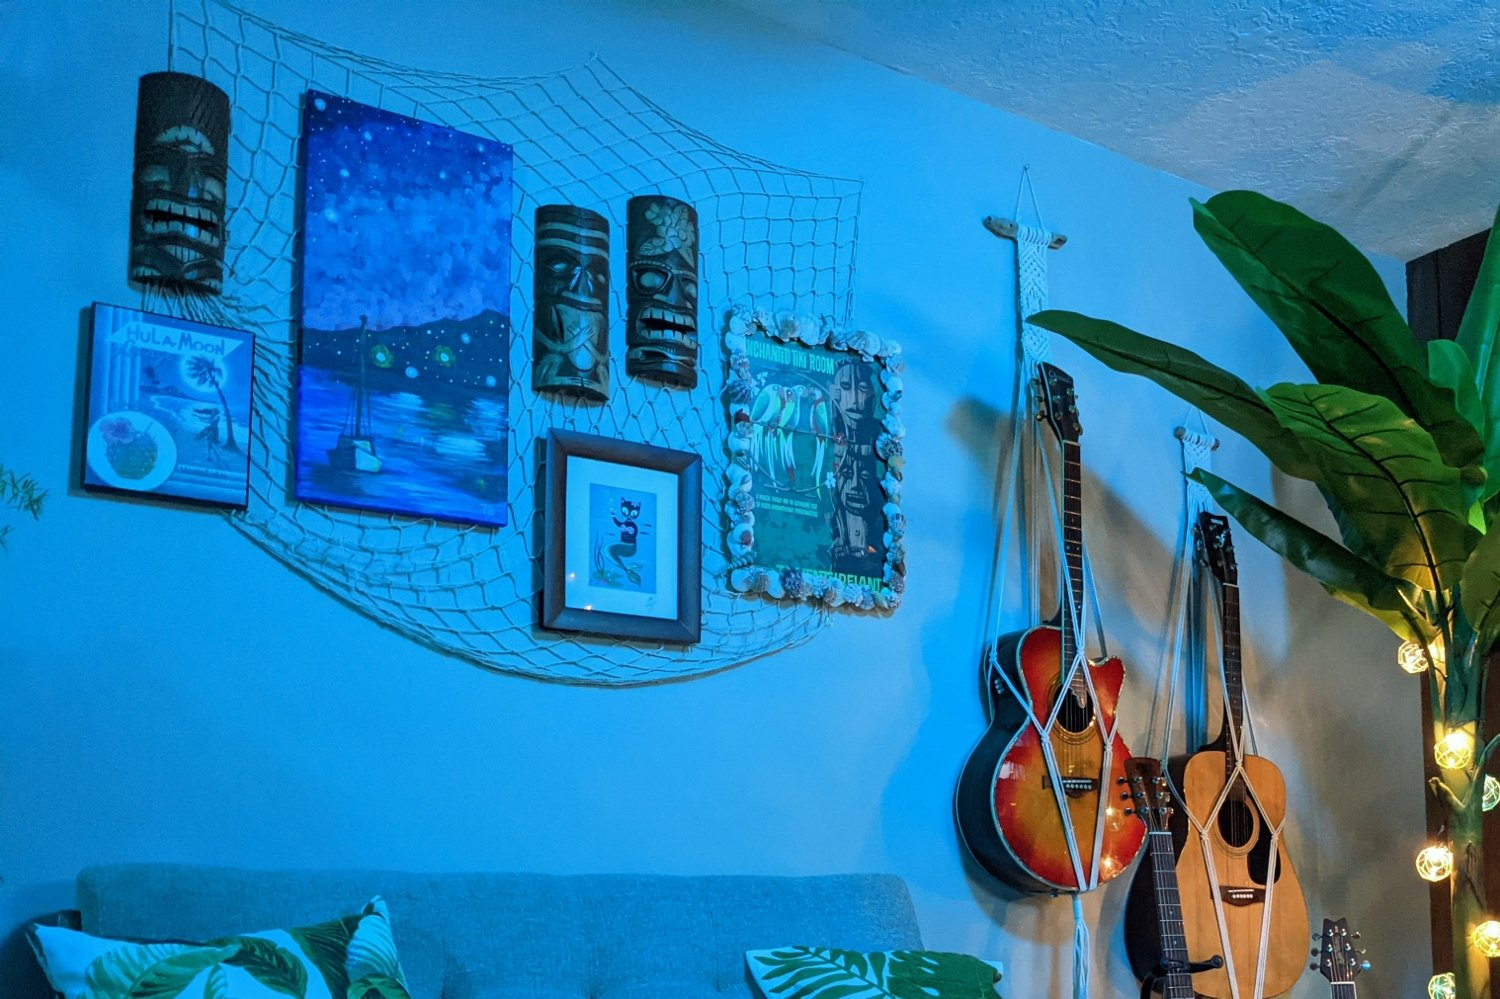 Tiki bar gallery wall at night with romantic blue lighting and nautical string lights